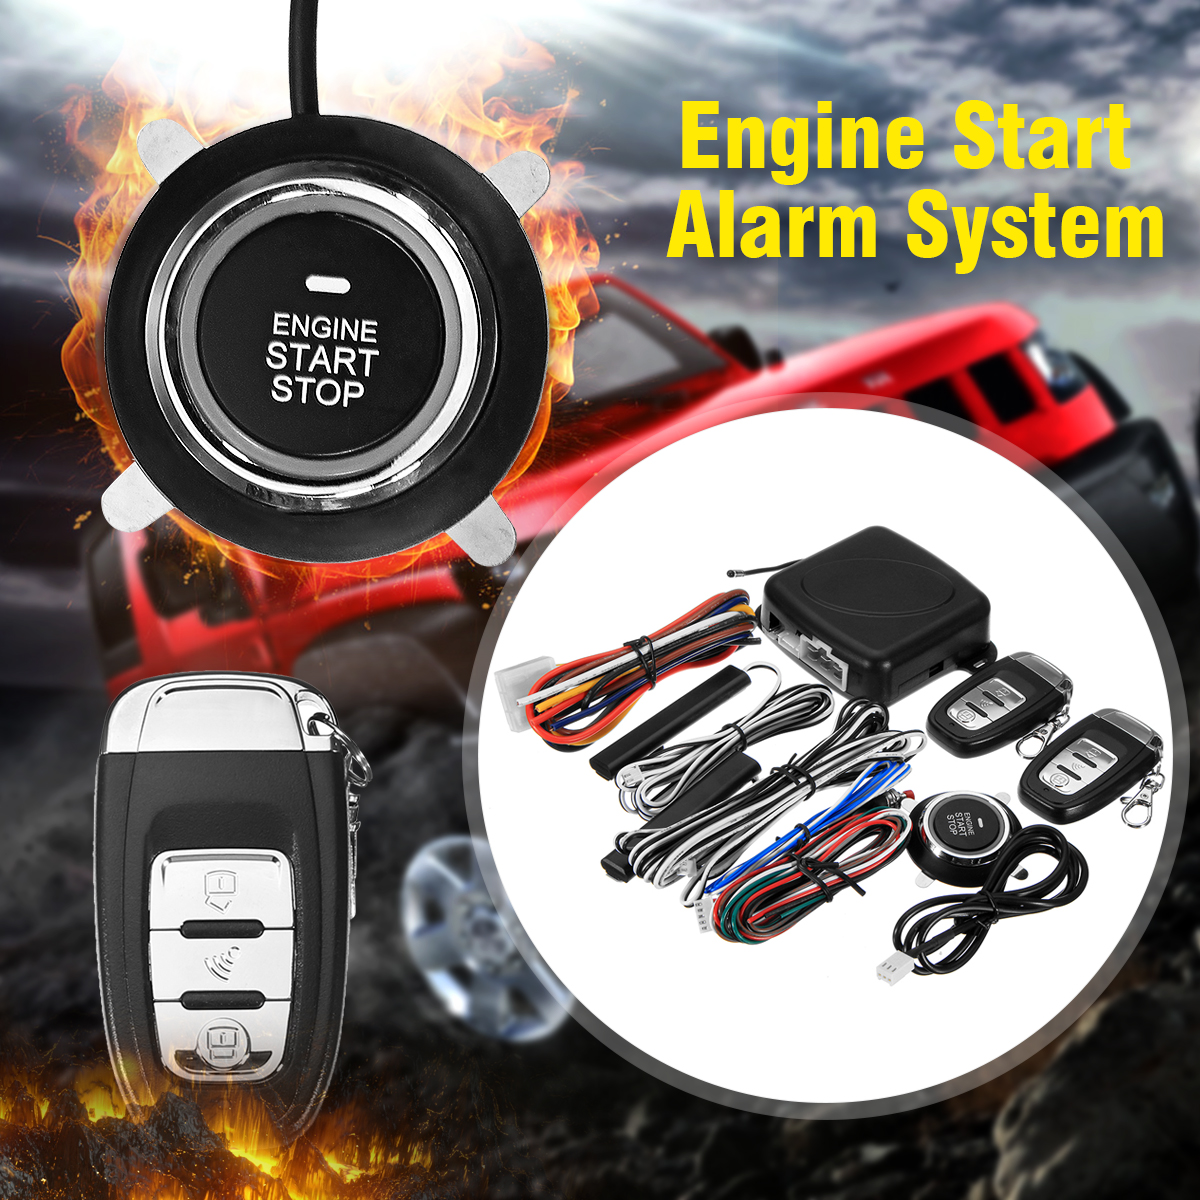 Alarm-System Stop Car-Accessories Remote-Starter Push-Button Entry-Engine Automobiles title=